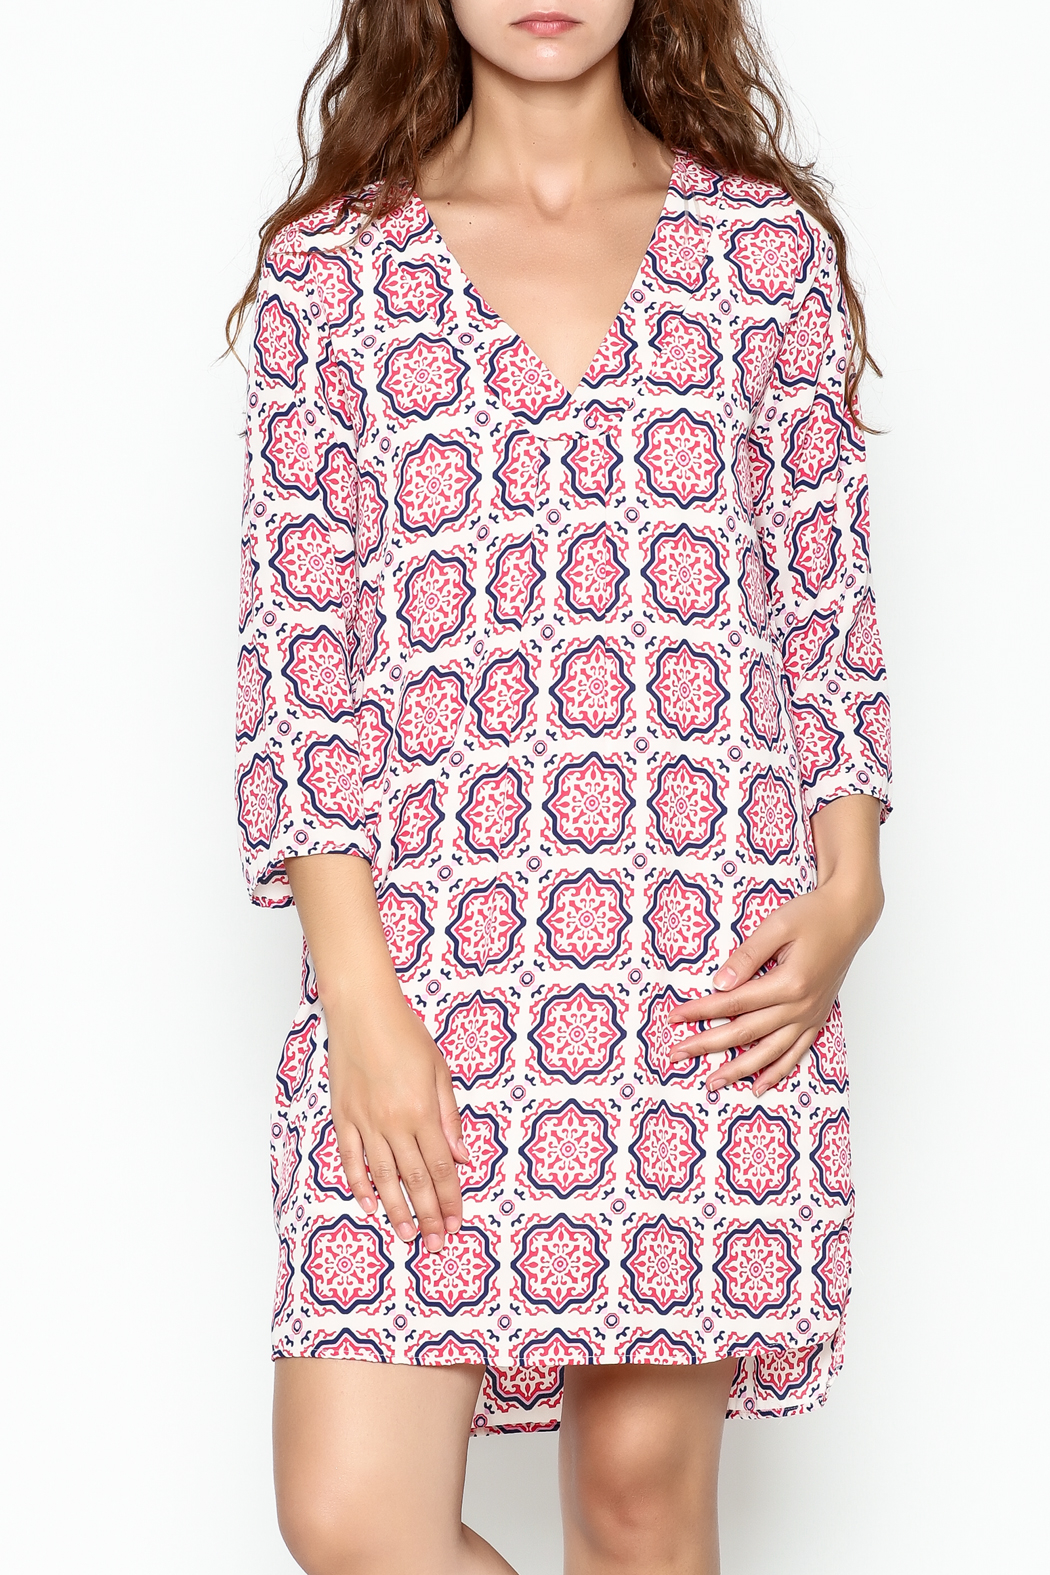 Peach Love California Capri Medallion Dress - Main Image